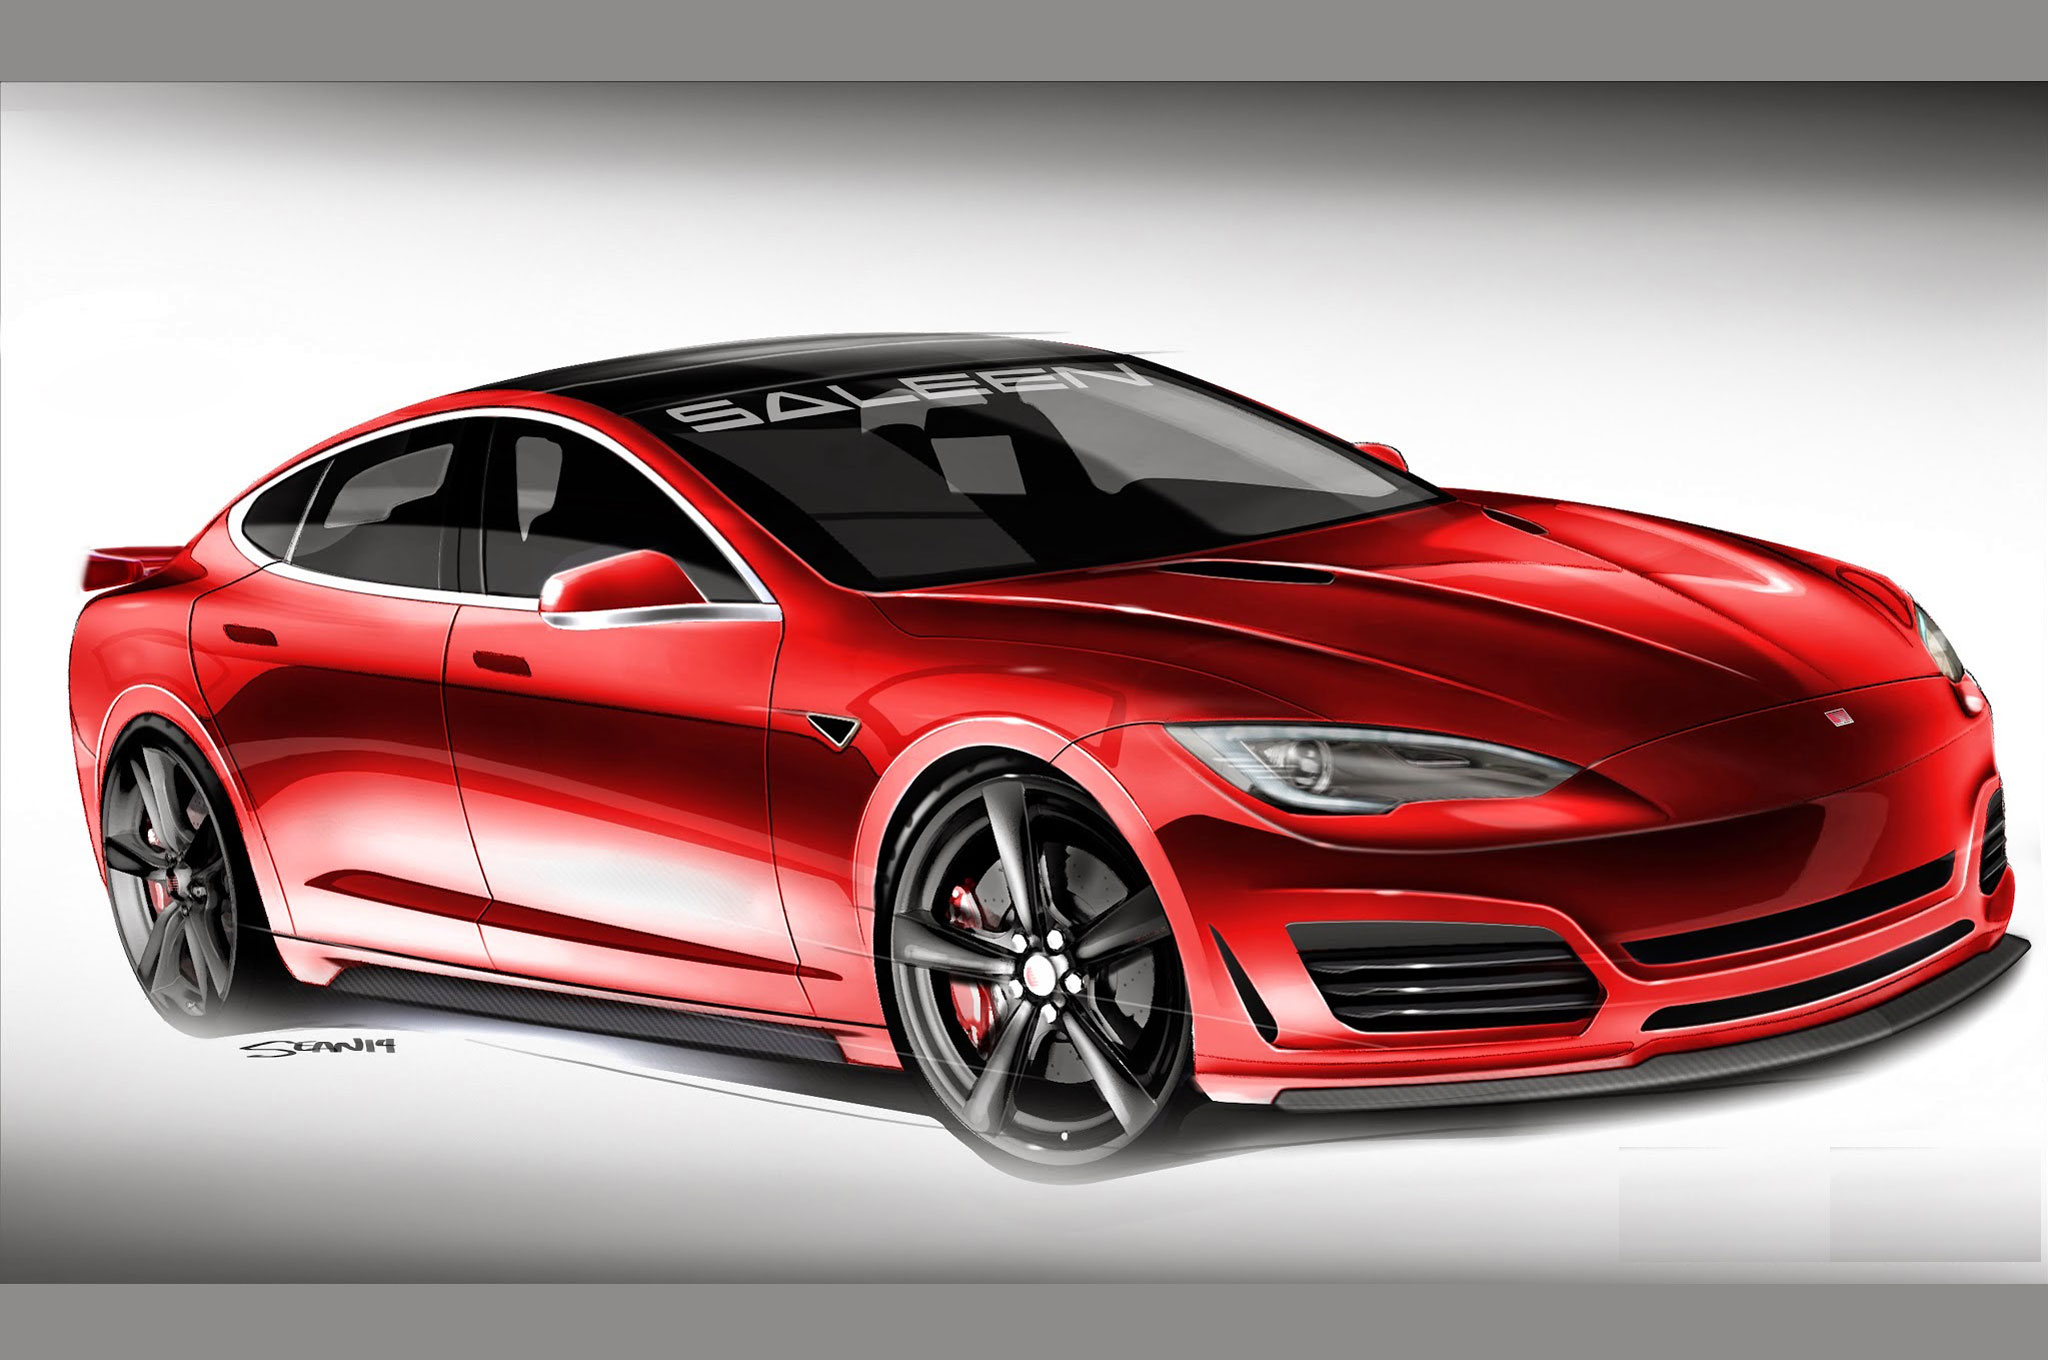 Saleen Tesla Model S to Arrive This Summer, Mods Still a Mystery